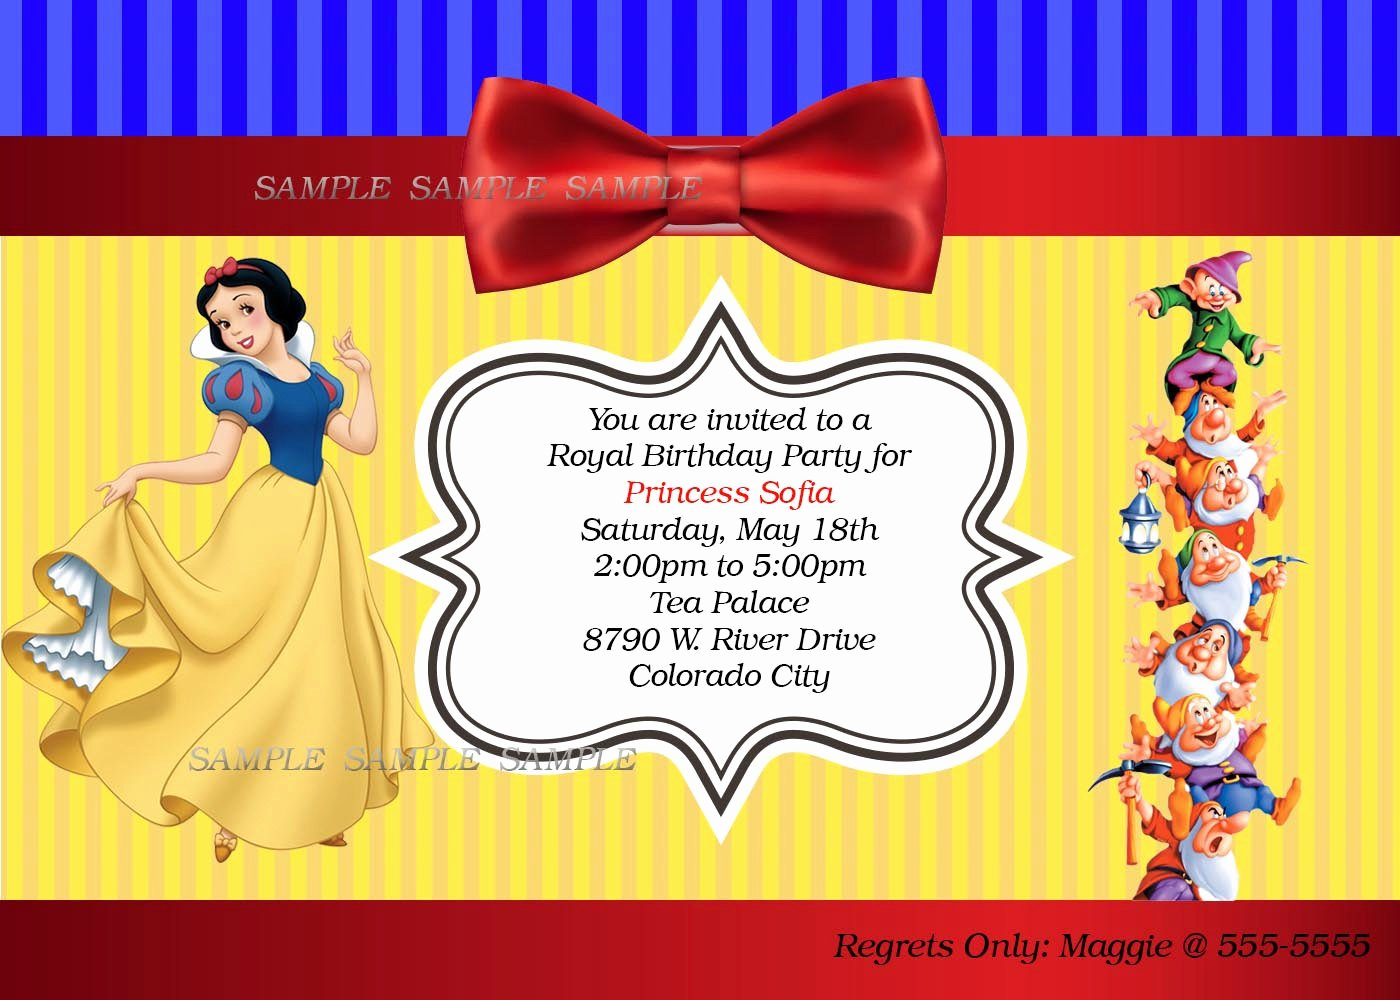 Snow White Invitation Template Fresh Snow White Birthday Party Invitation Wording Letter